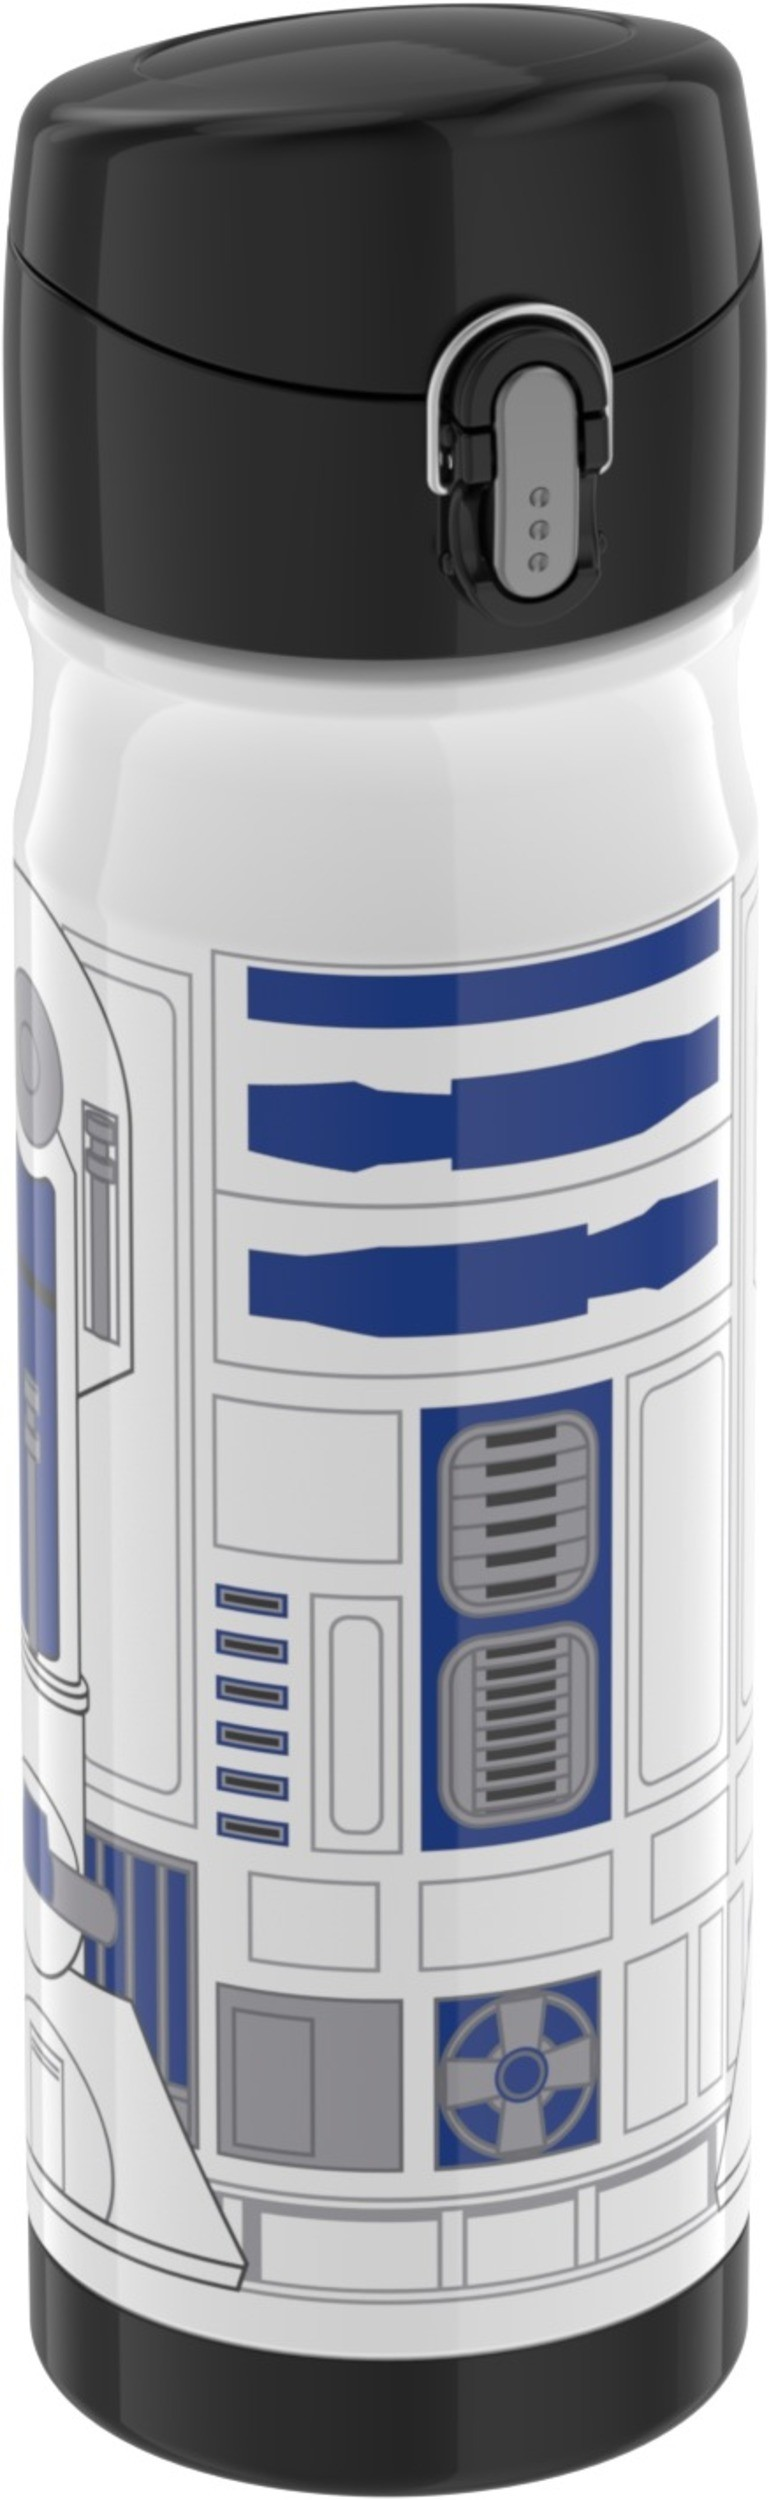 STAINLESS STEEL DIRECT DRINK BOTTLE 16OZ STAR WARS - R2D2